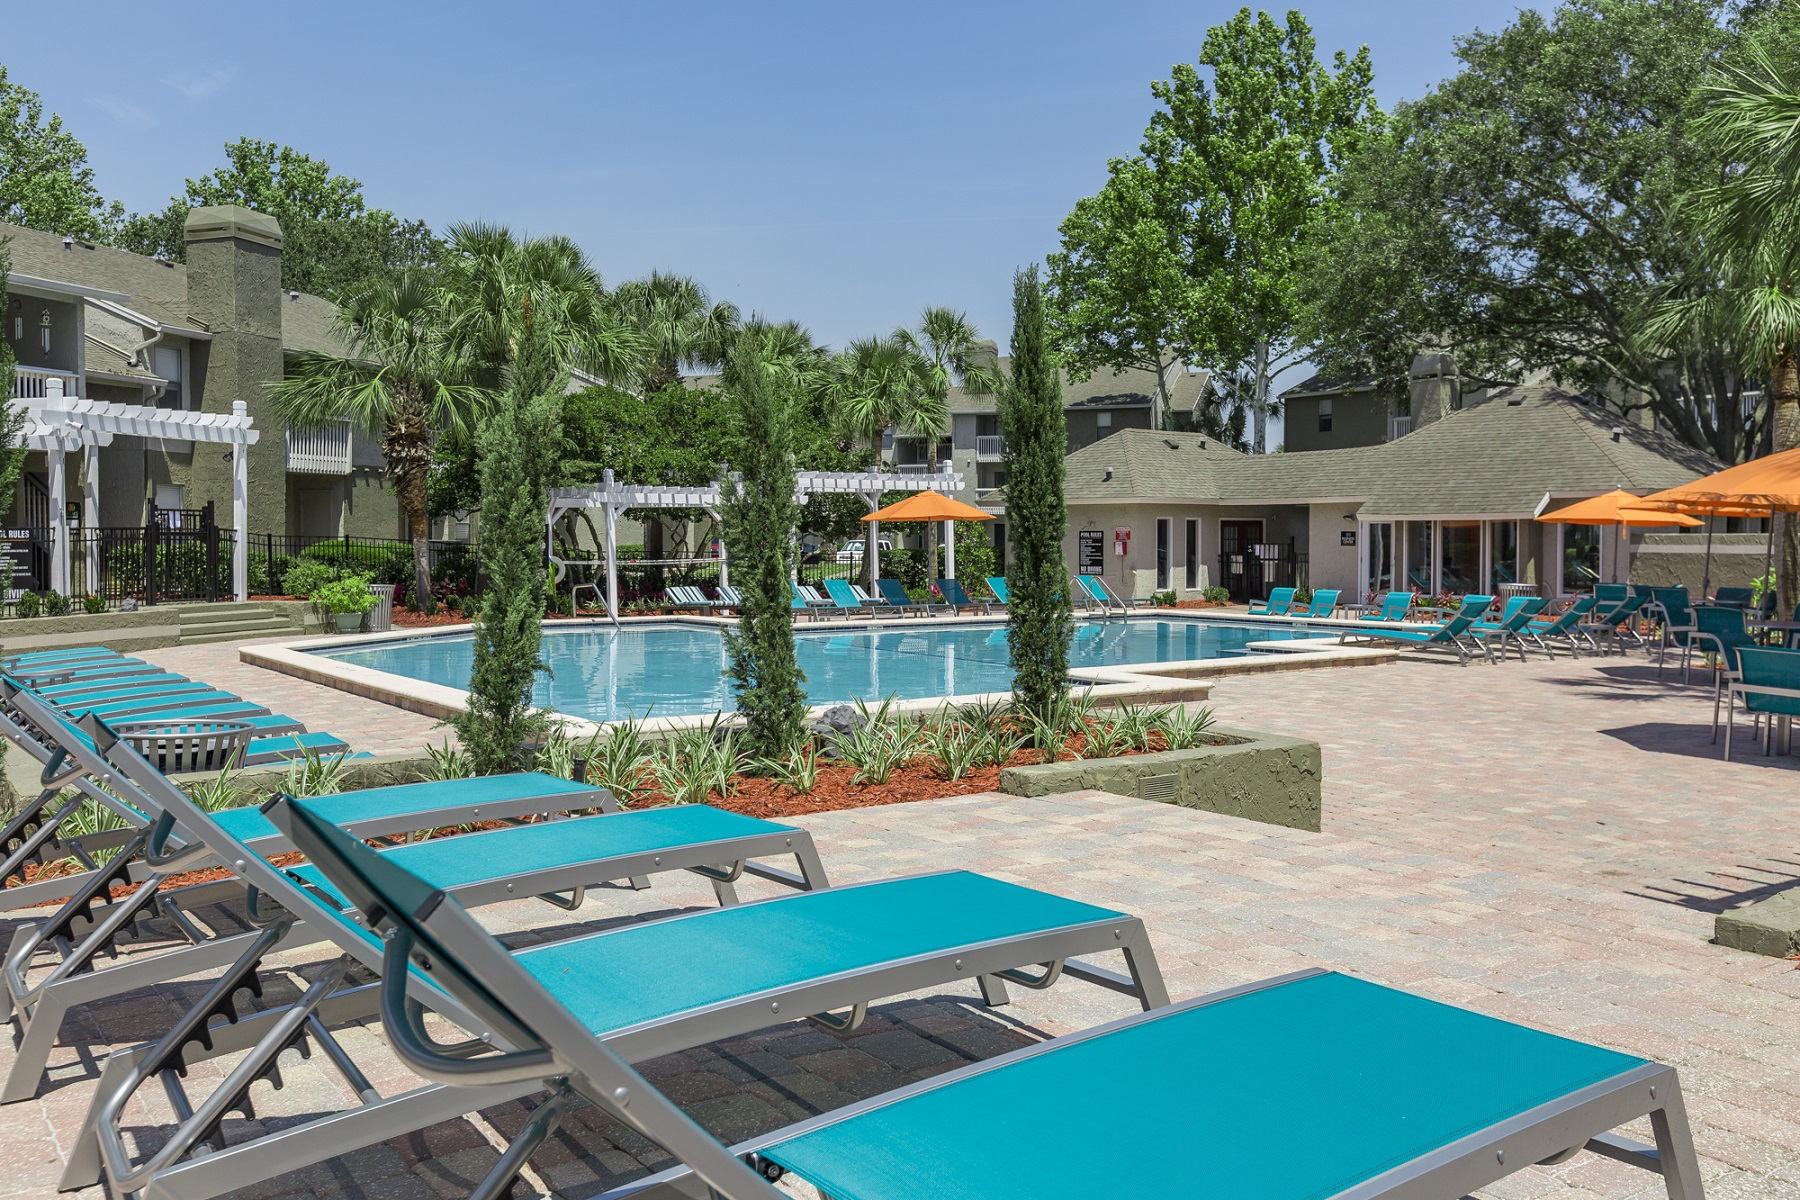 Welcome to Palms at Beacon Pointe in Jacksonville, FL